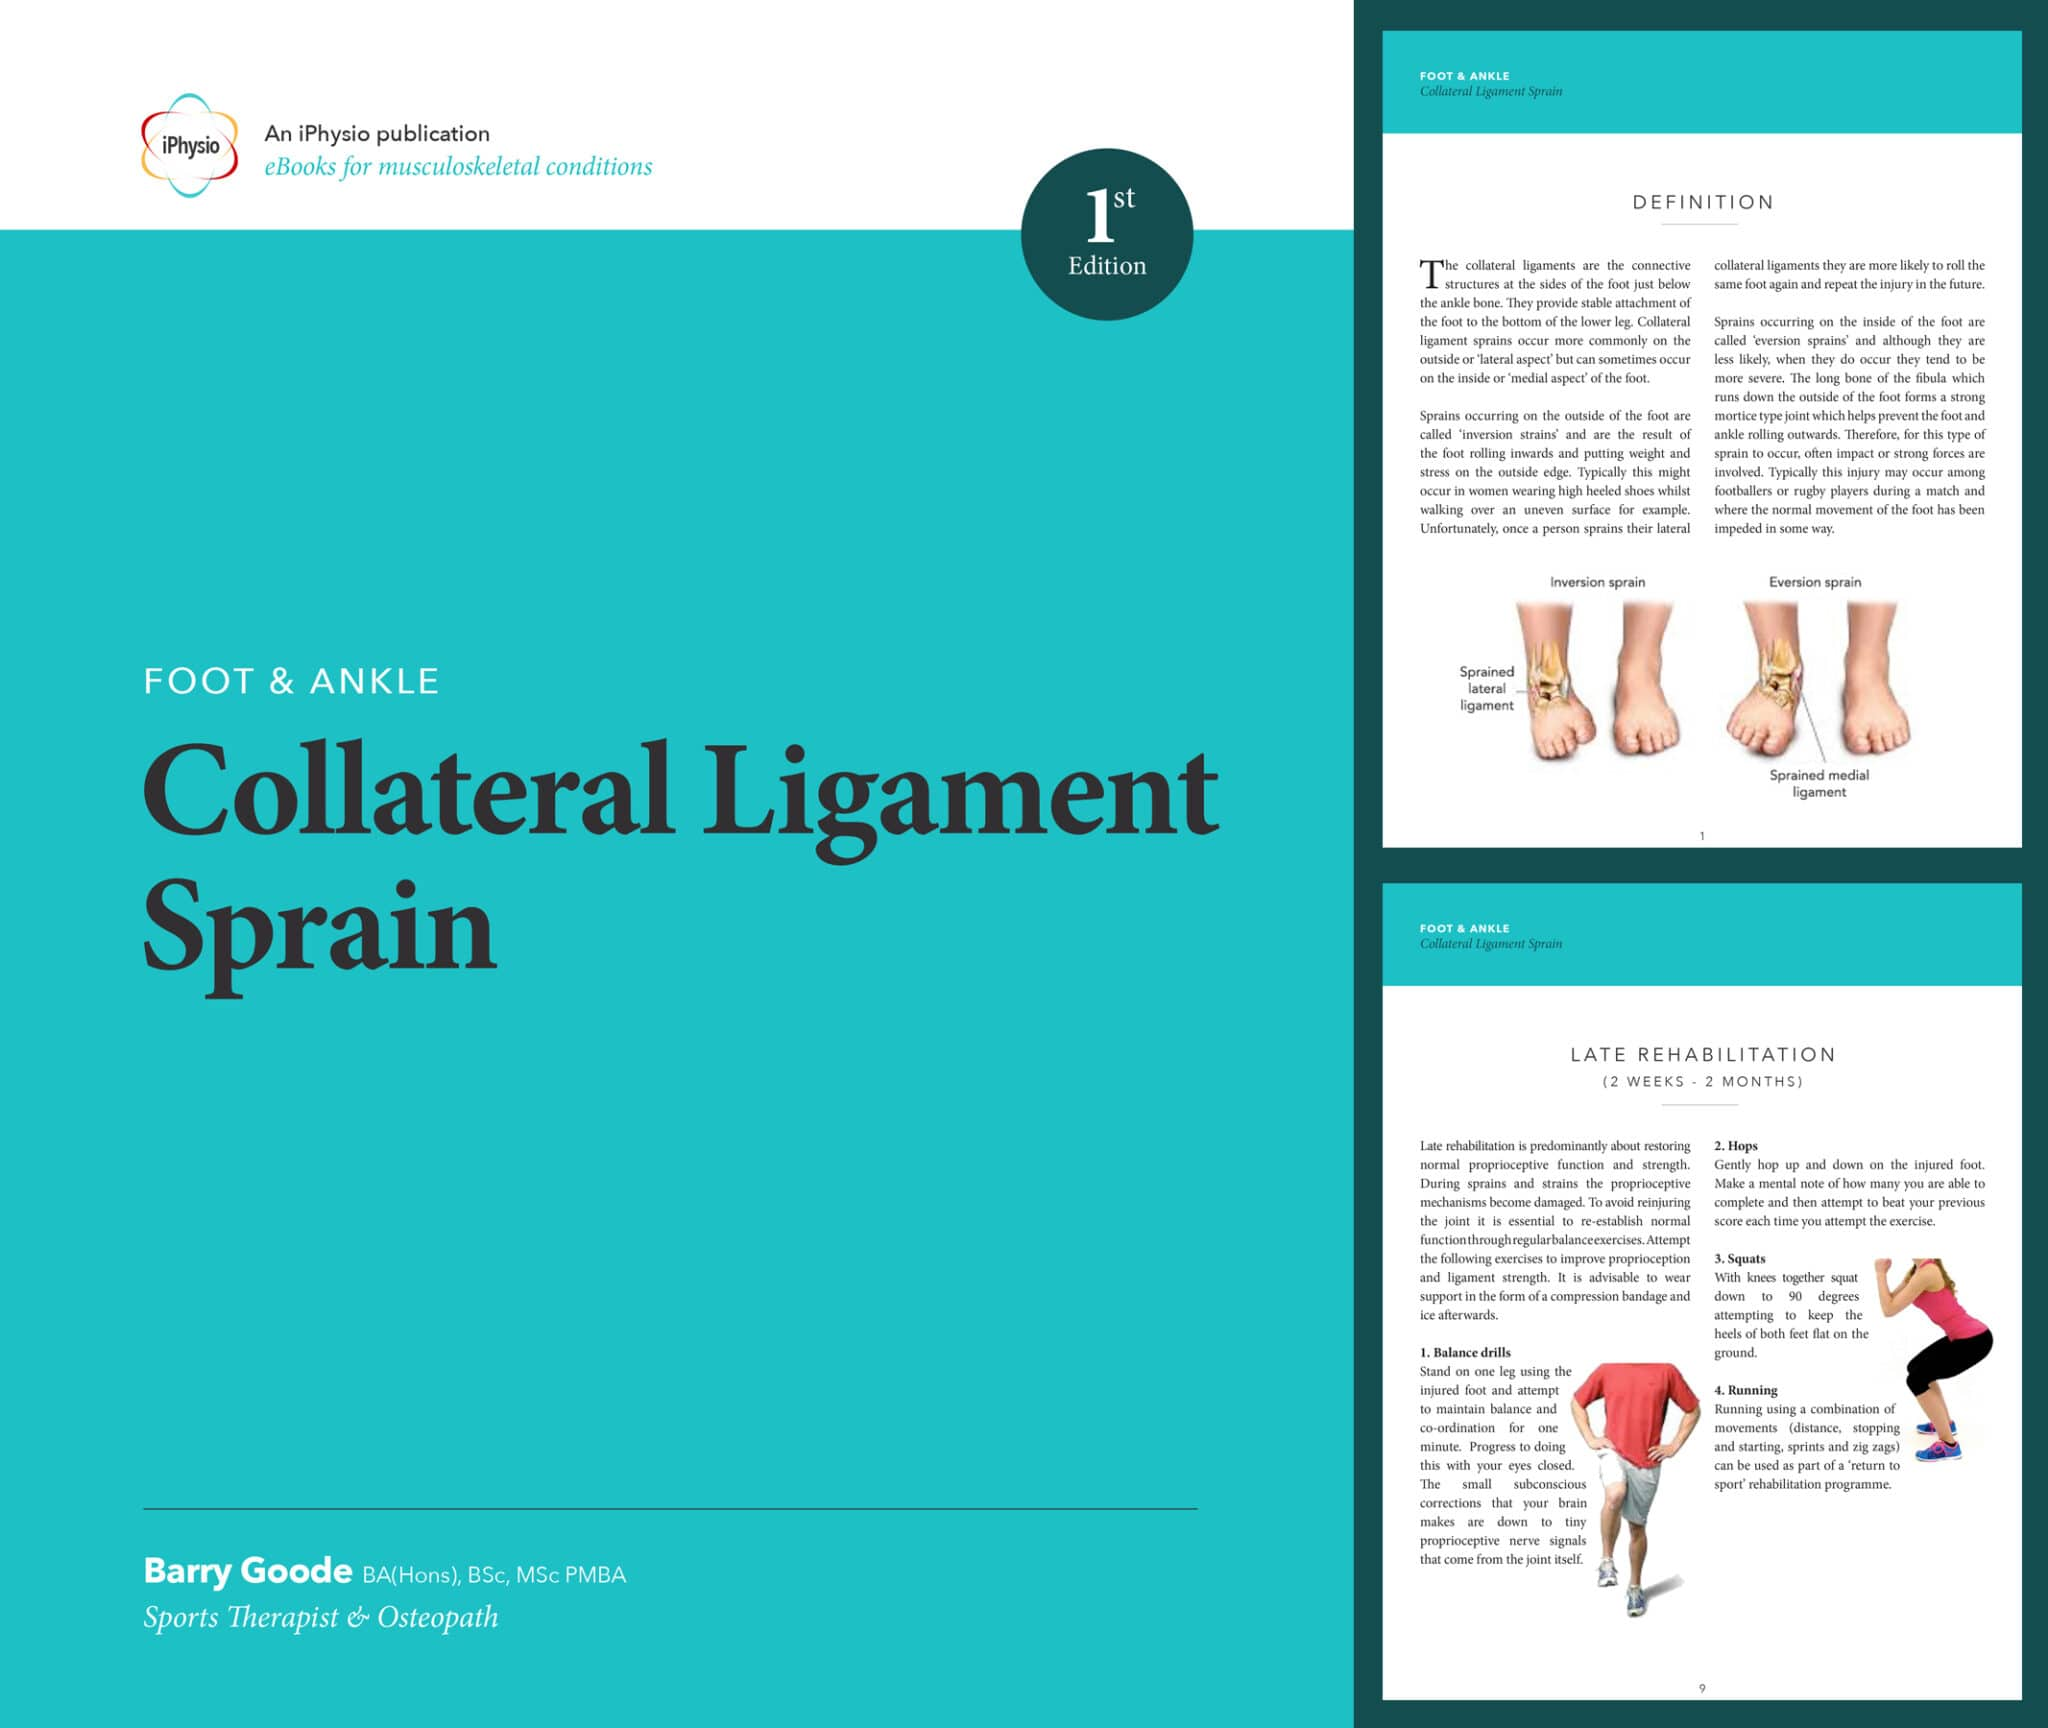 Collateral Ligament Sprain treatment advice